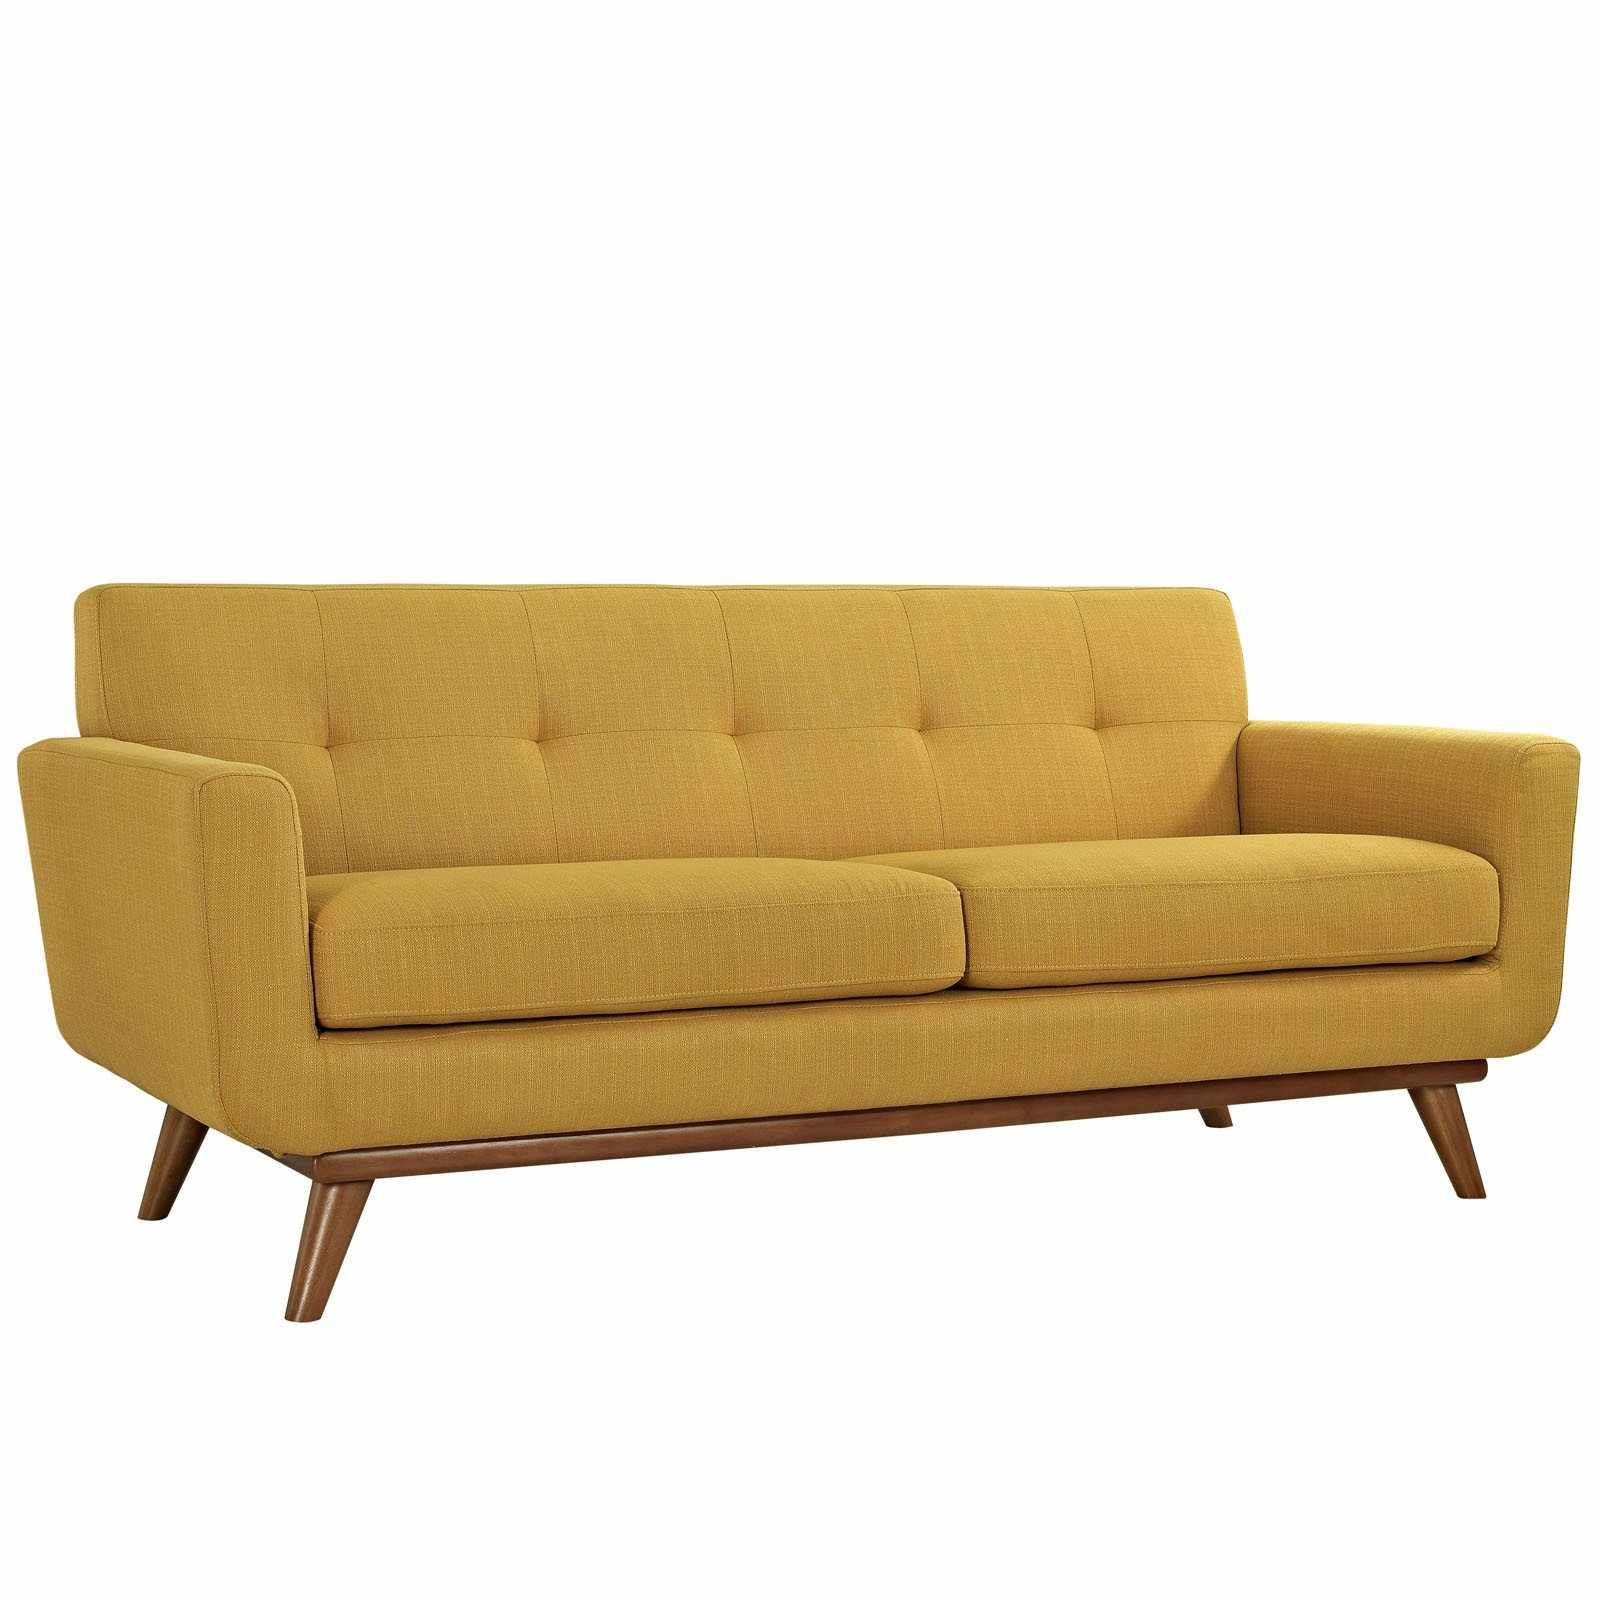 Beau Queen Mary Loveseat Loveseats Free Shipping